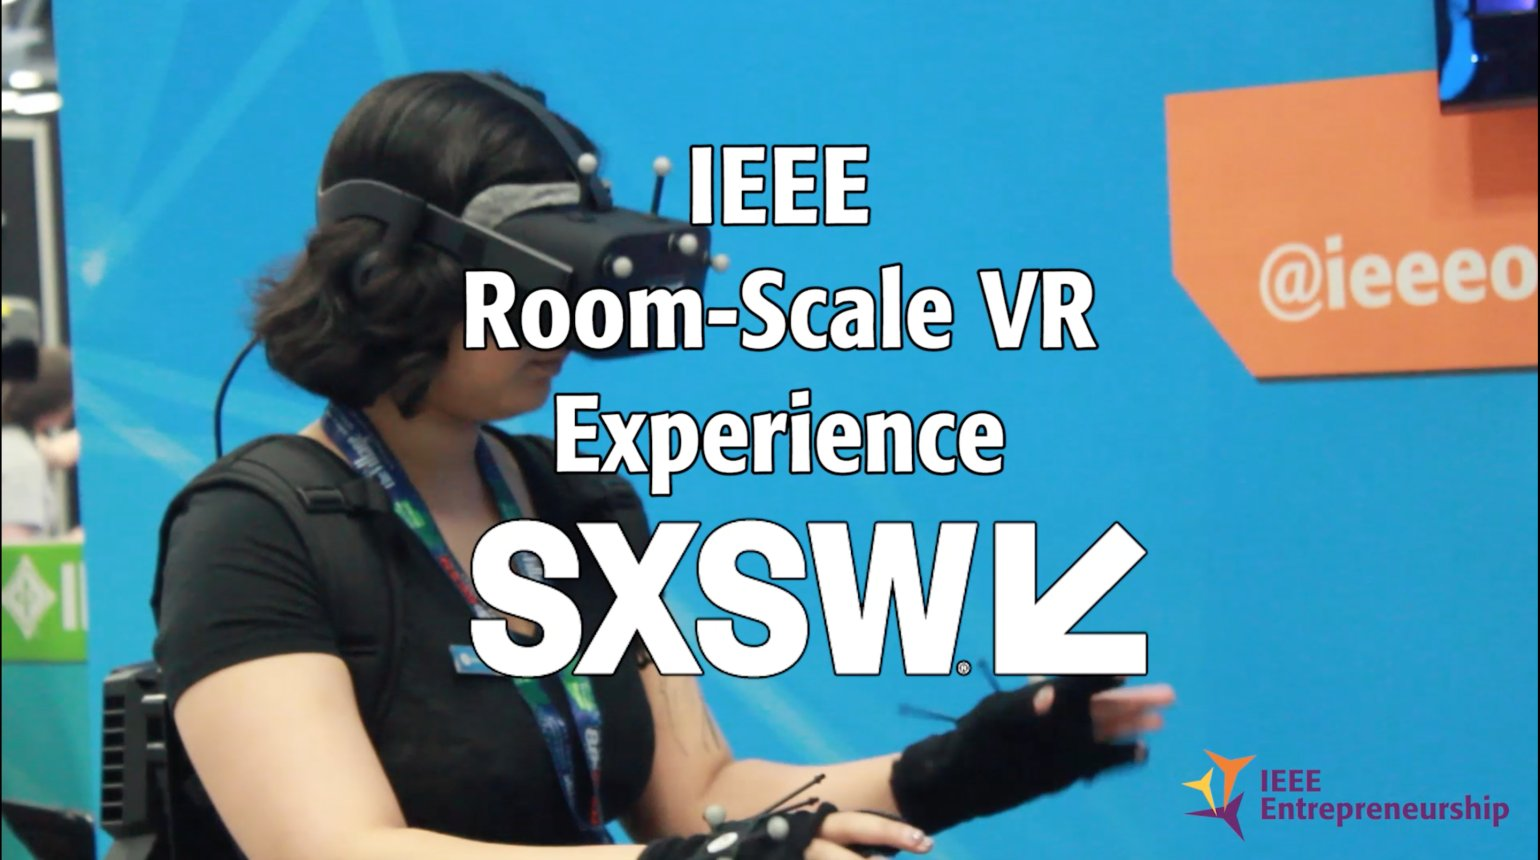 IEEE's Room-Scale VR Experience at SXSW 2017!